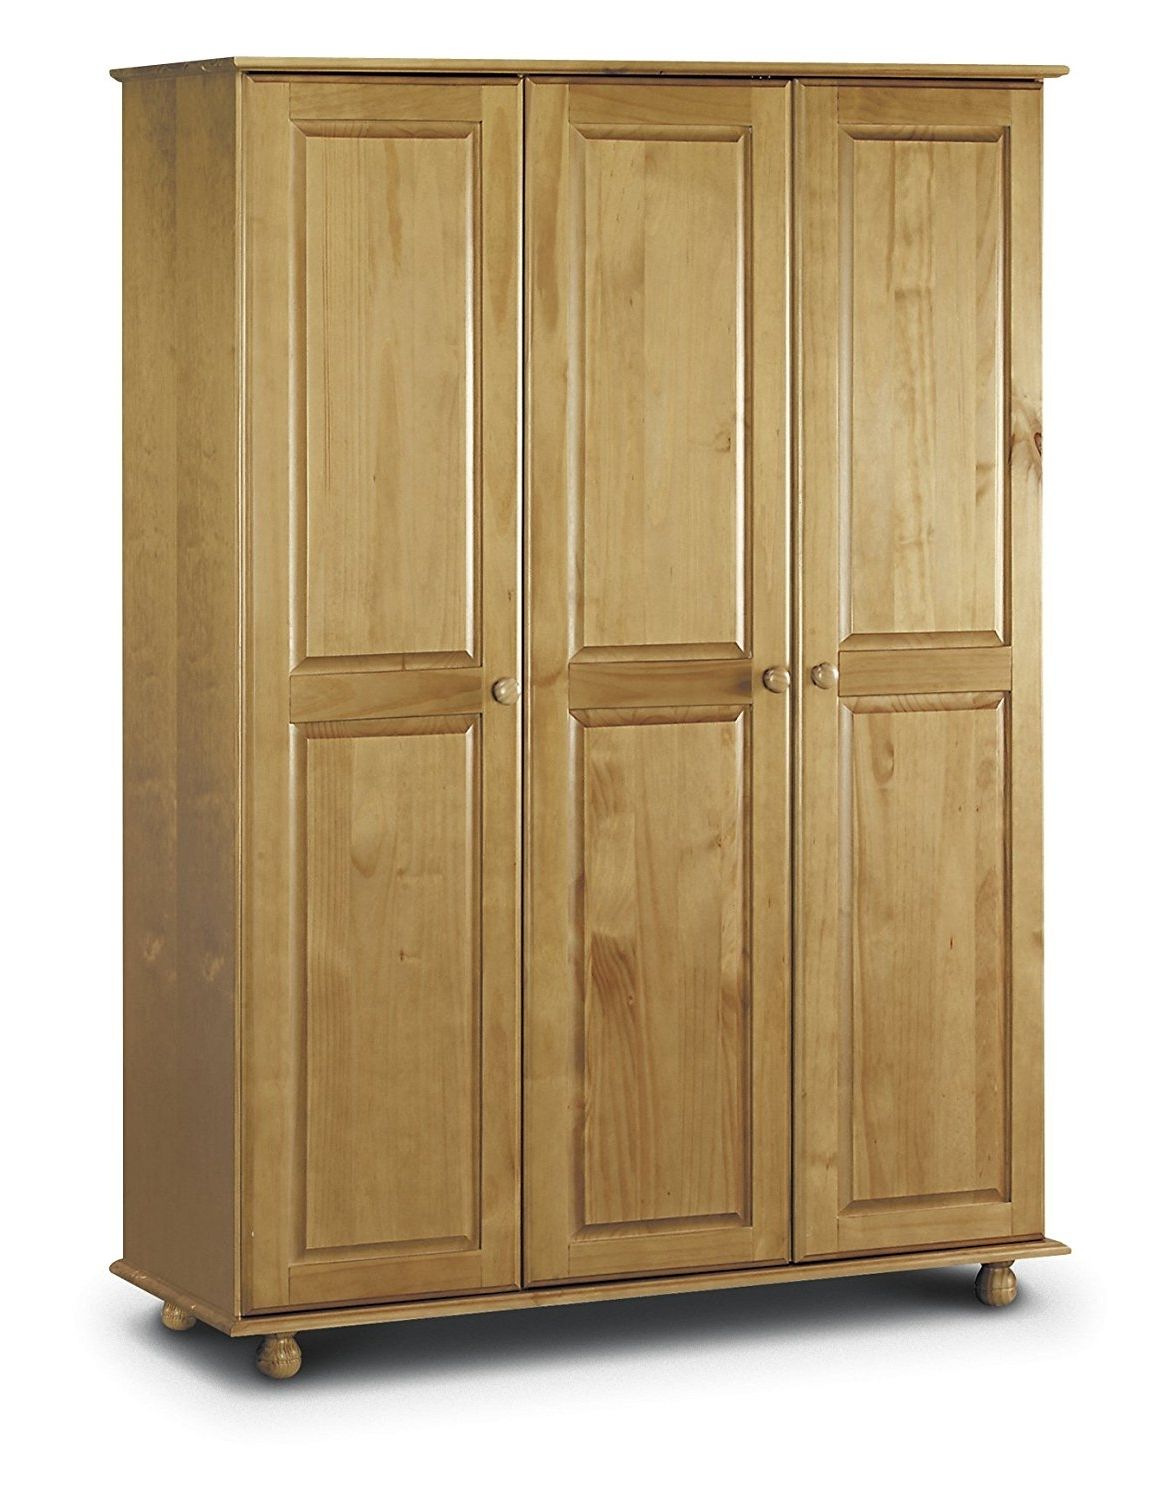 3 Door Pine Wardrobes Pertaining To Fashionable Julian Bowen Pickwick 3 Door All Hanging Pine Wardrobe: Amazon.co (Gallery 5 of 15)